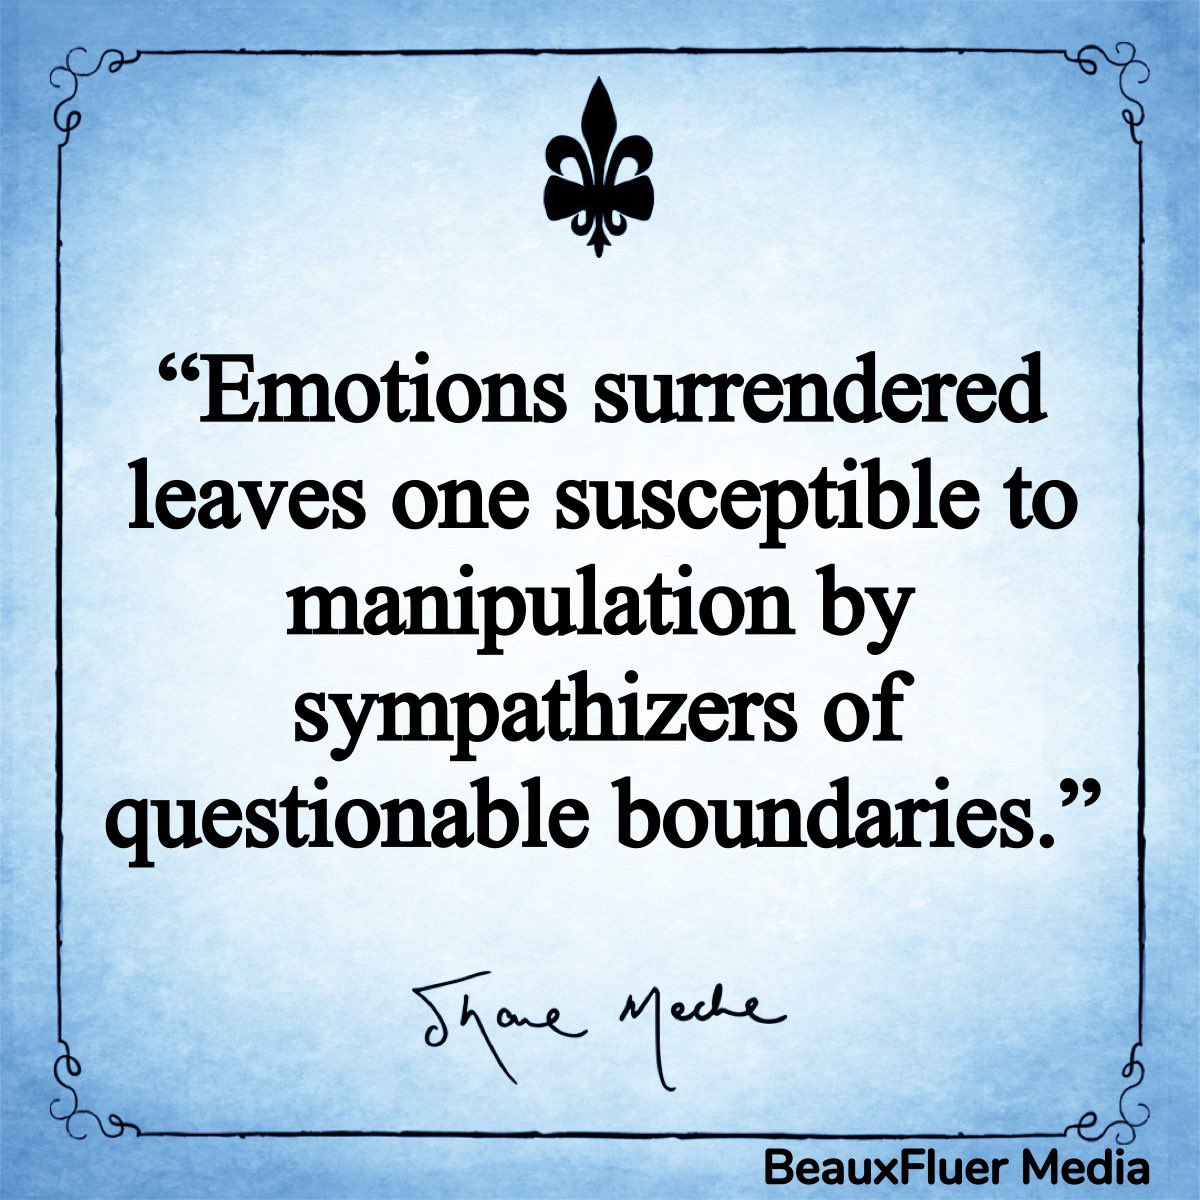 Control yet experience.   #shanemeche #author #cigars #bourbon #writer #bowties #southerngentleman  #control #emotions #surrender #manipulation #boundries #questions